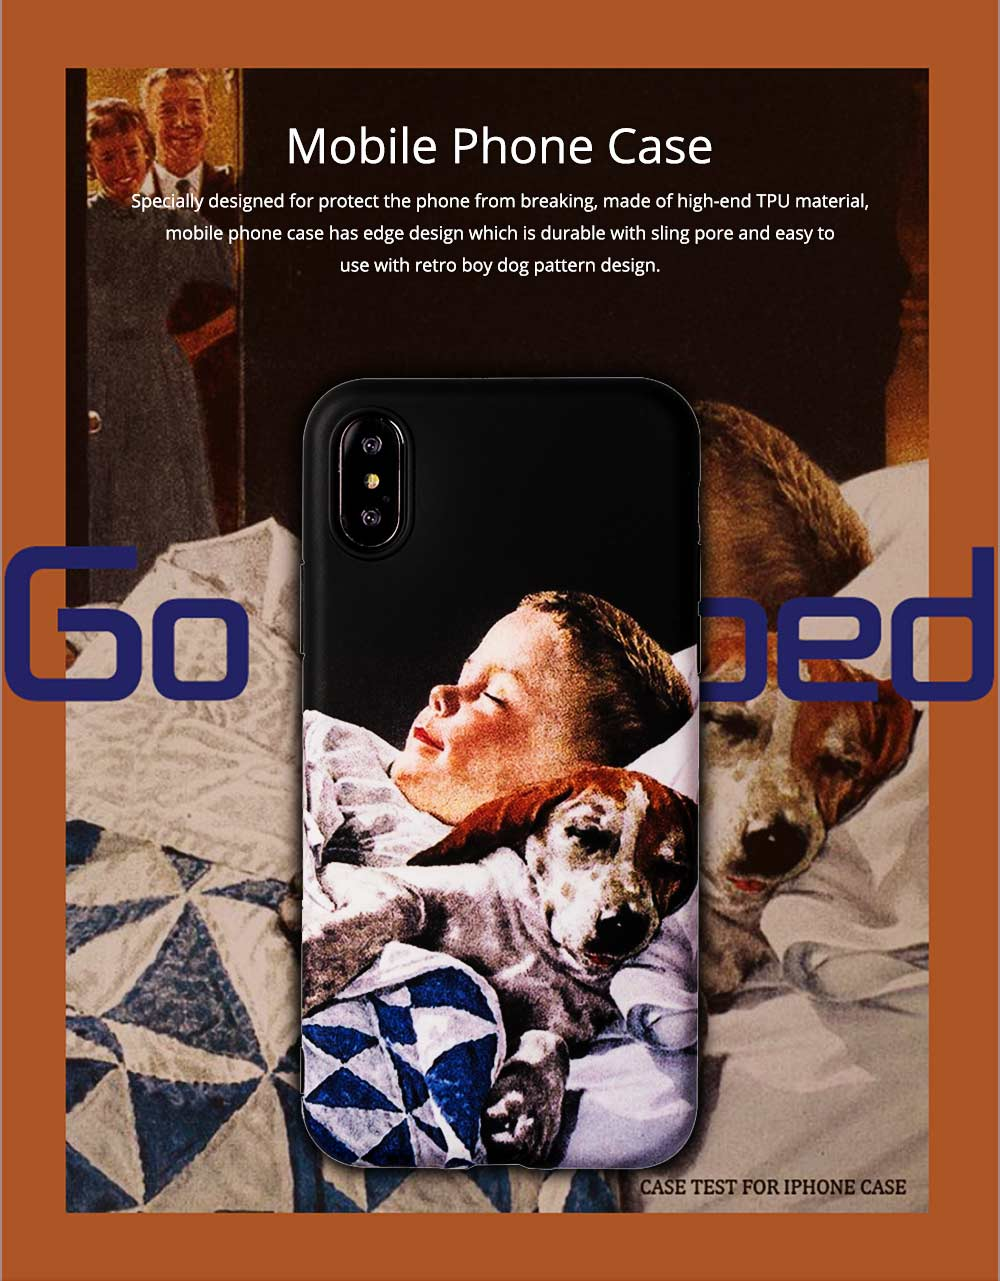 Mobile Phone Case with Retro Boy Dog Pattern for iPhone 6s/6sp, 7p/8p, XS/XR, Precise Audio Charging Hole Location Phone Shell 0